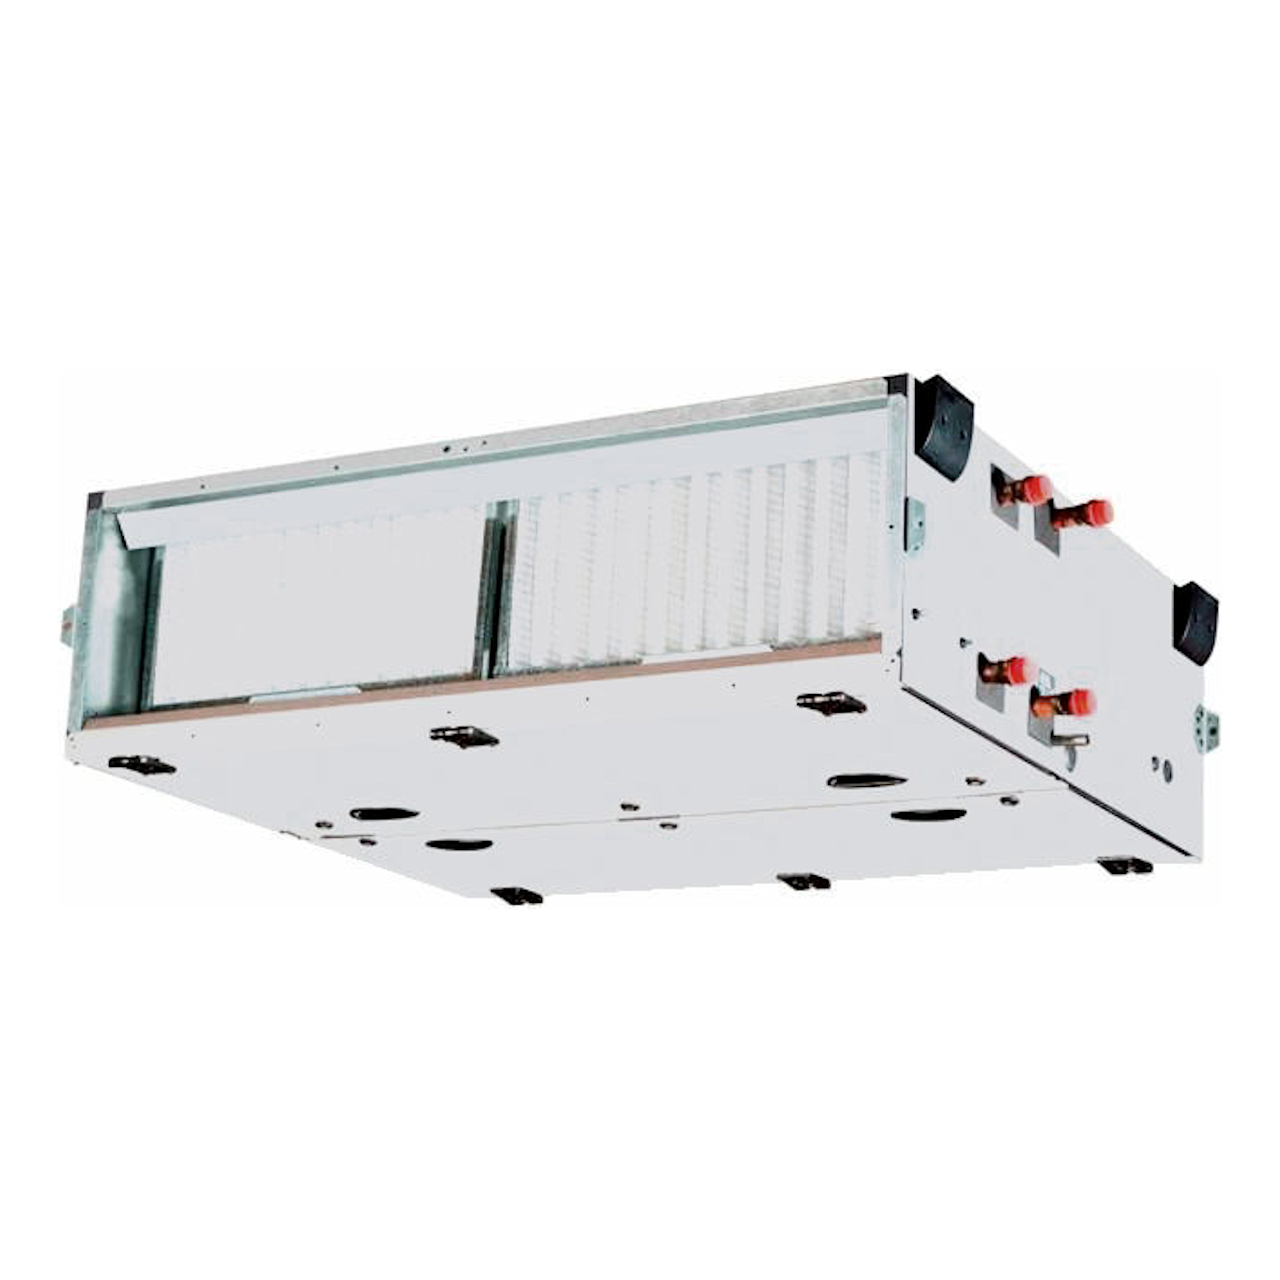 carrier-39CQ-air-handling-unit-compact-underceiling